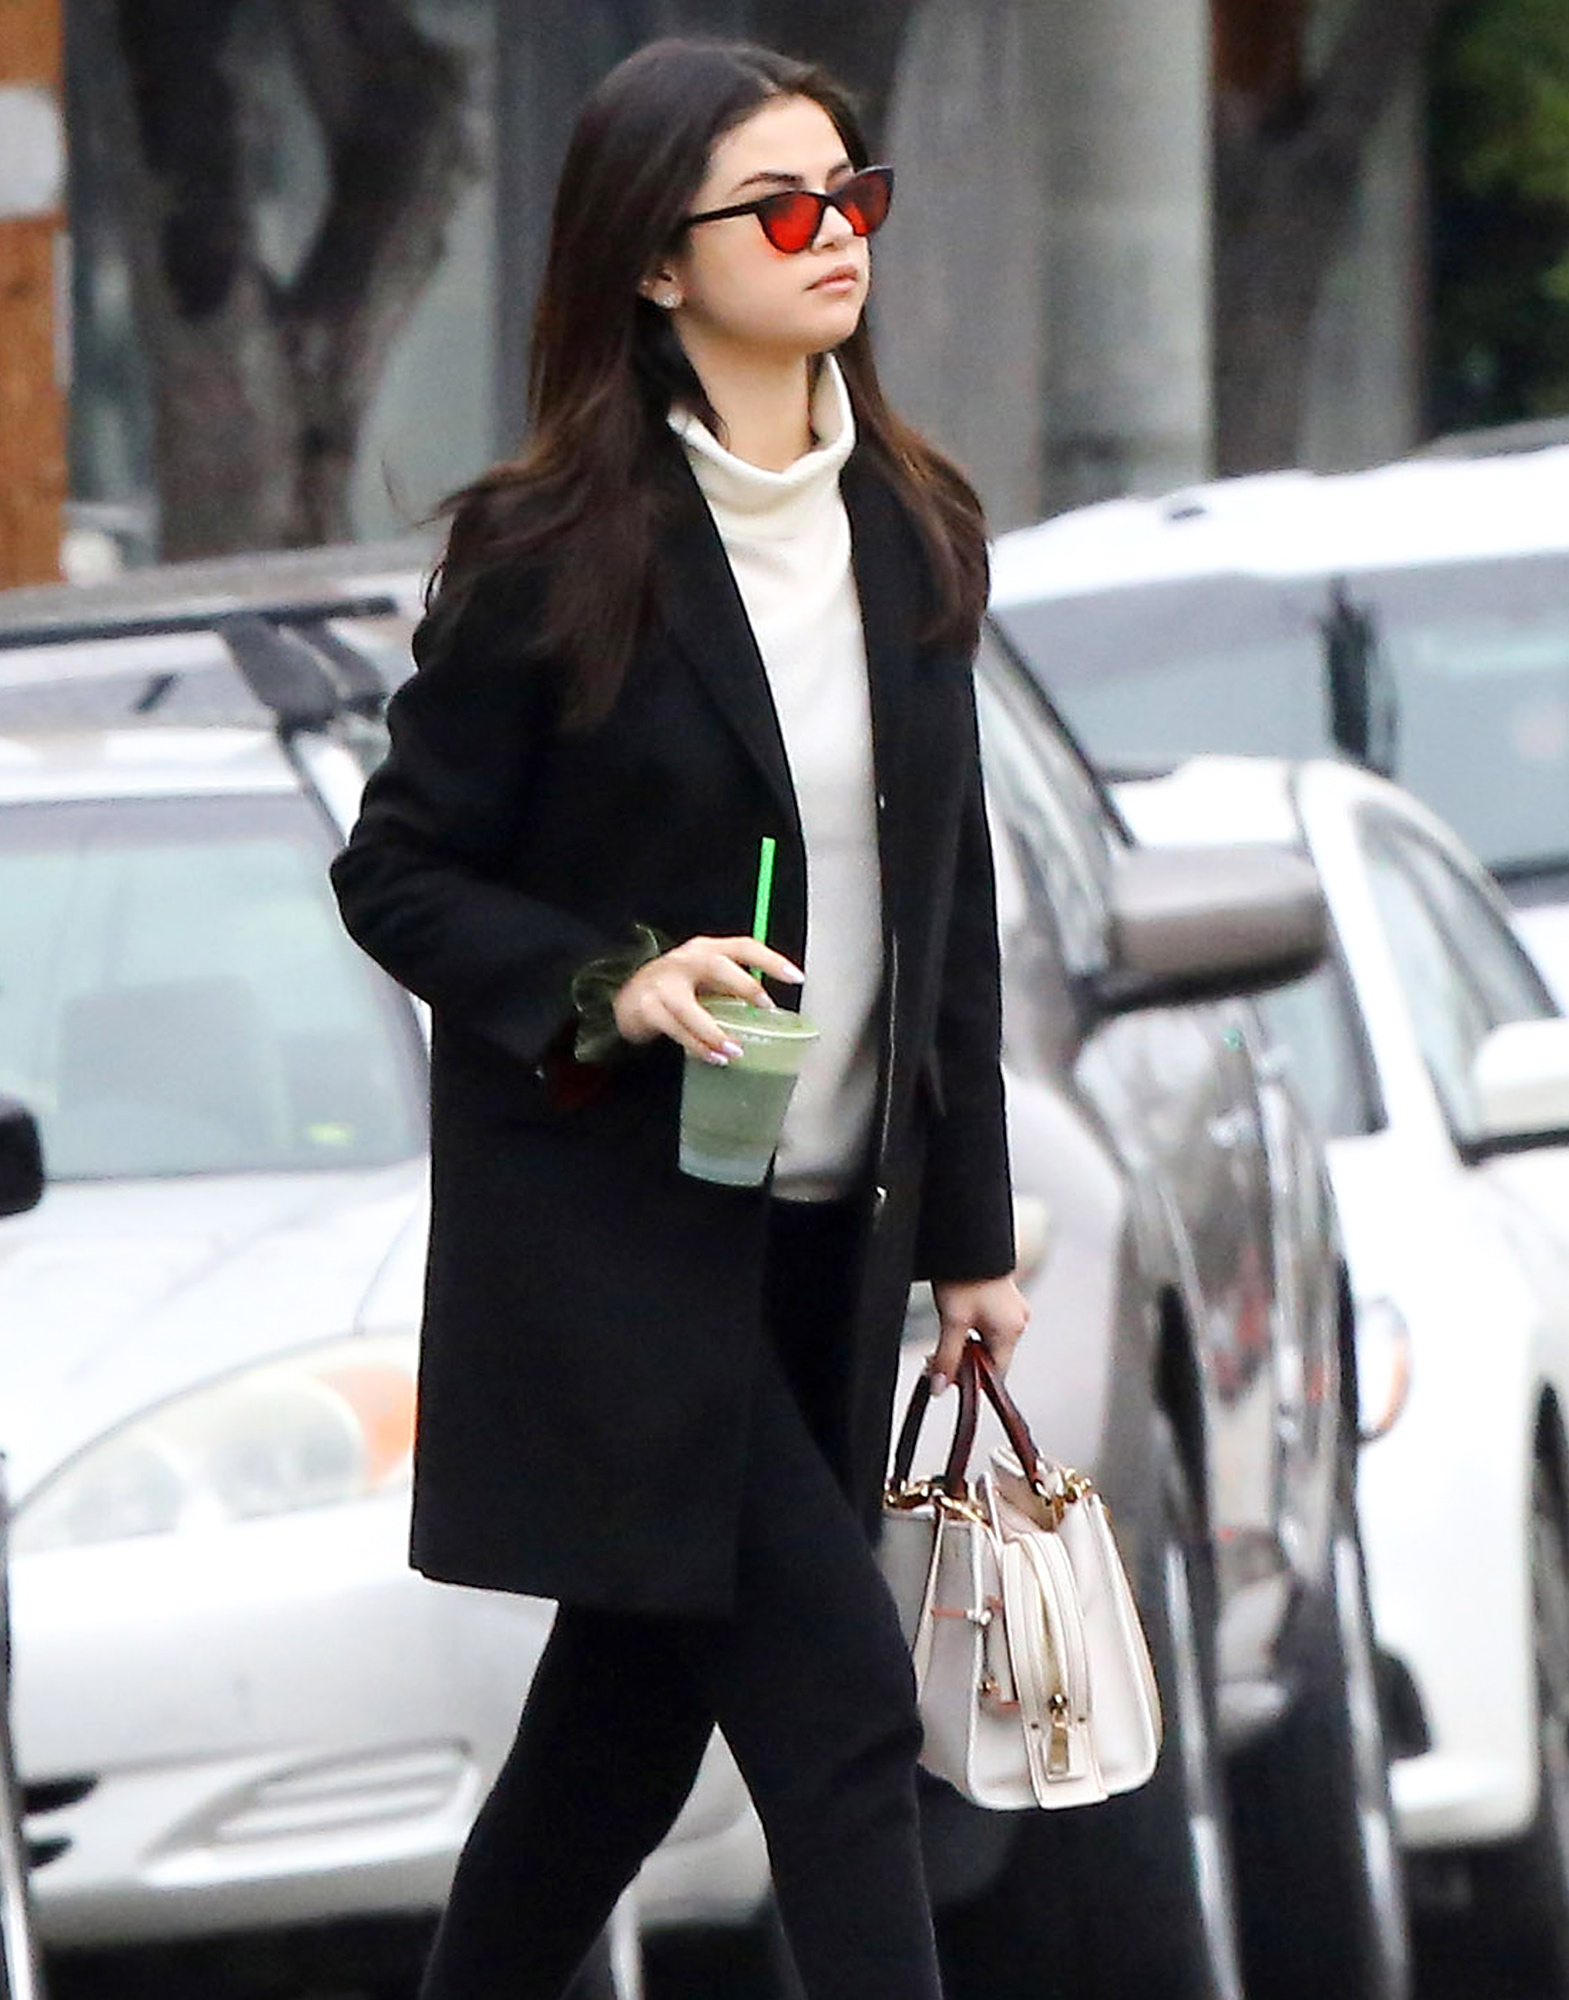 *EXCLUSIVE* Selena Gomez Juices up before a Spa Treatment